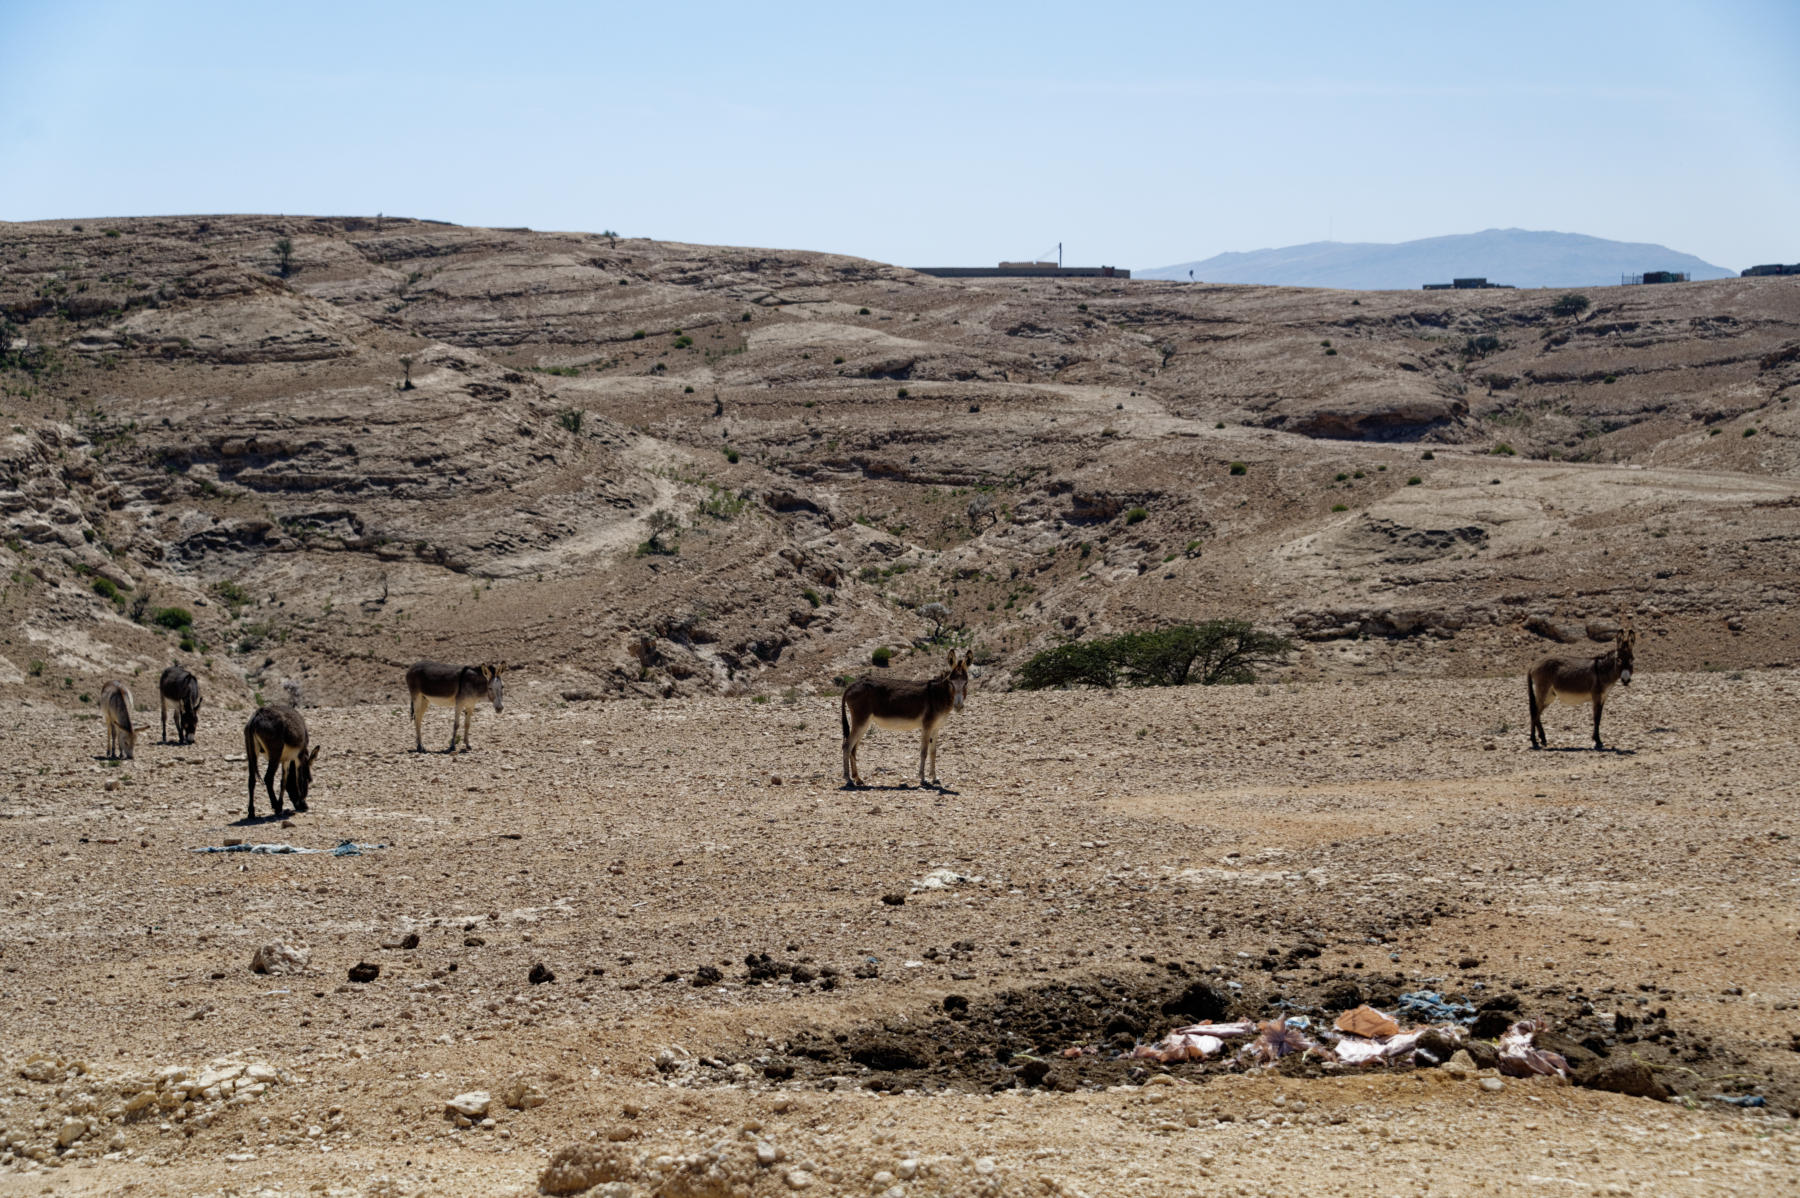 Wild donkeys in the Hajar Mountains, Oman